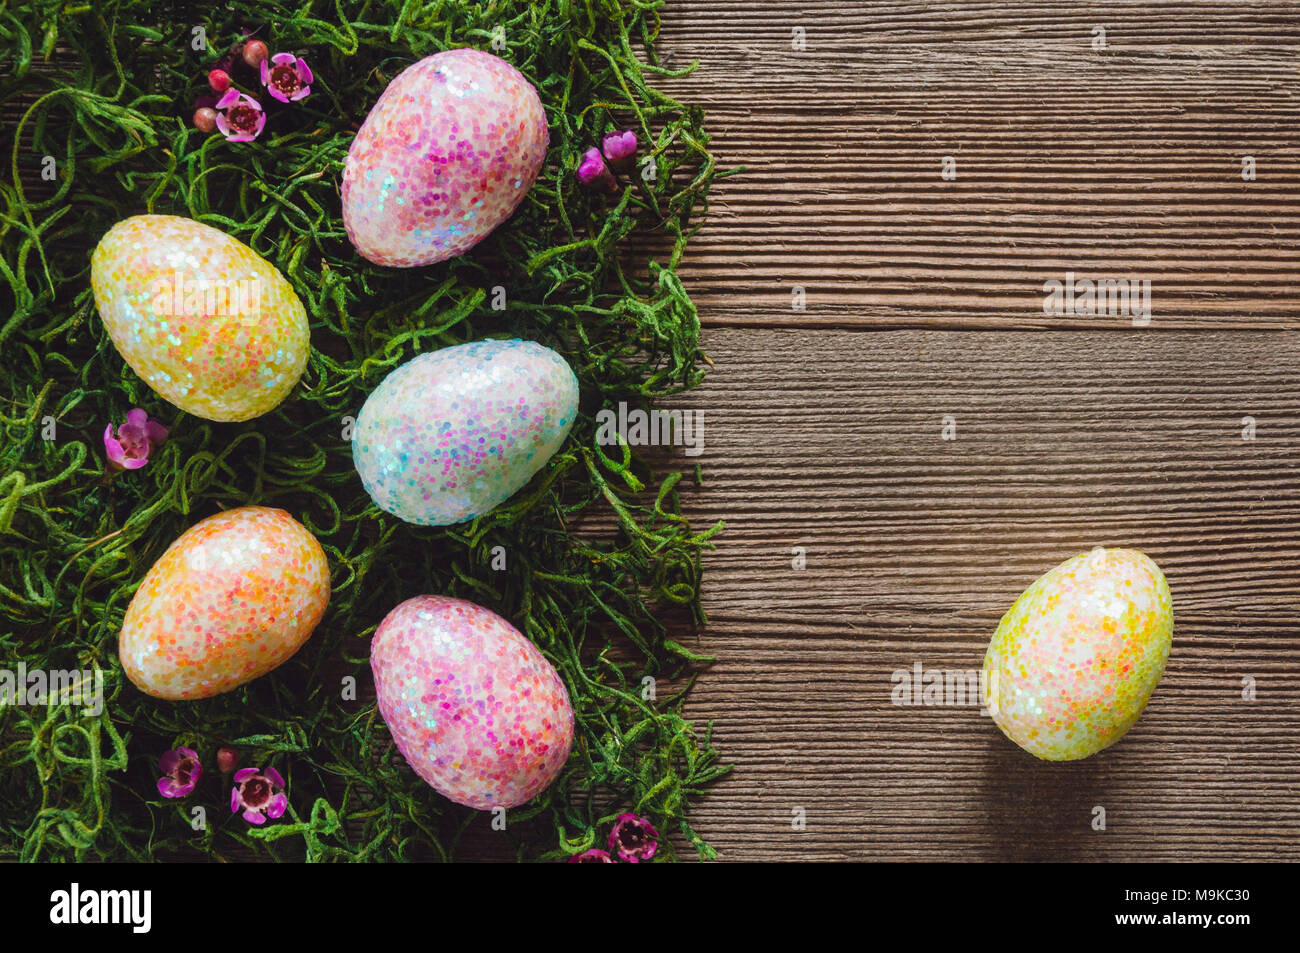 Decorated Eggs on Bed of Grass with Space for Copy - Stock Image